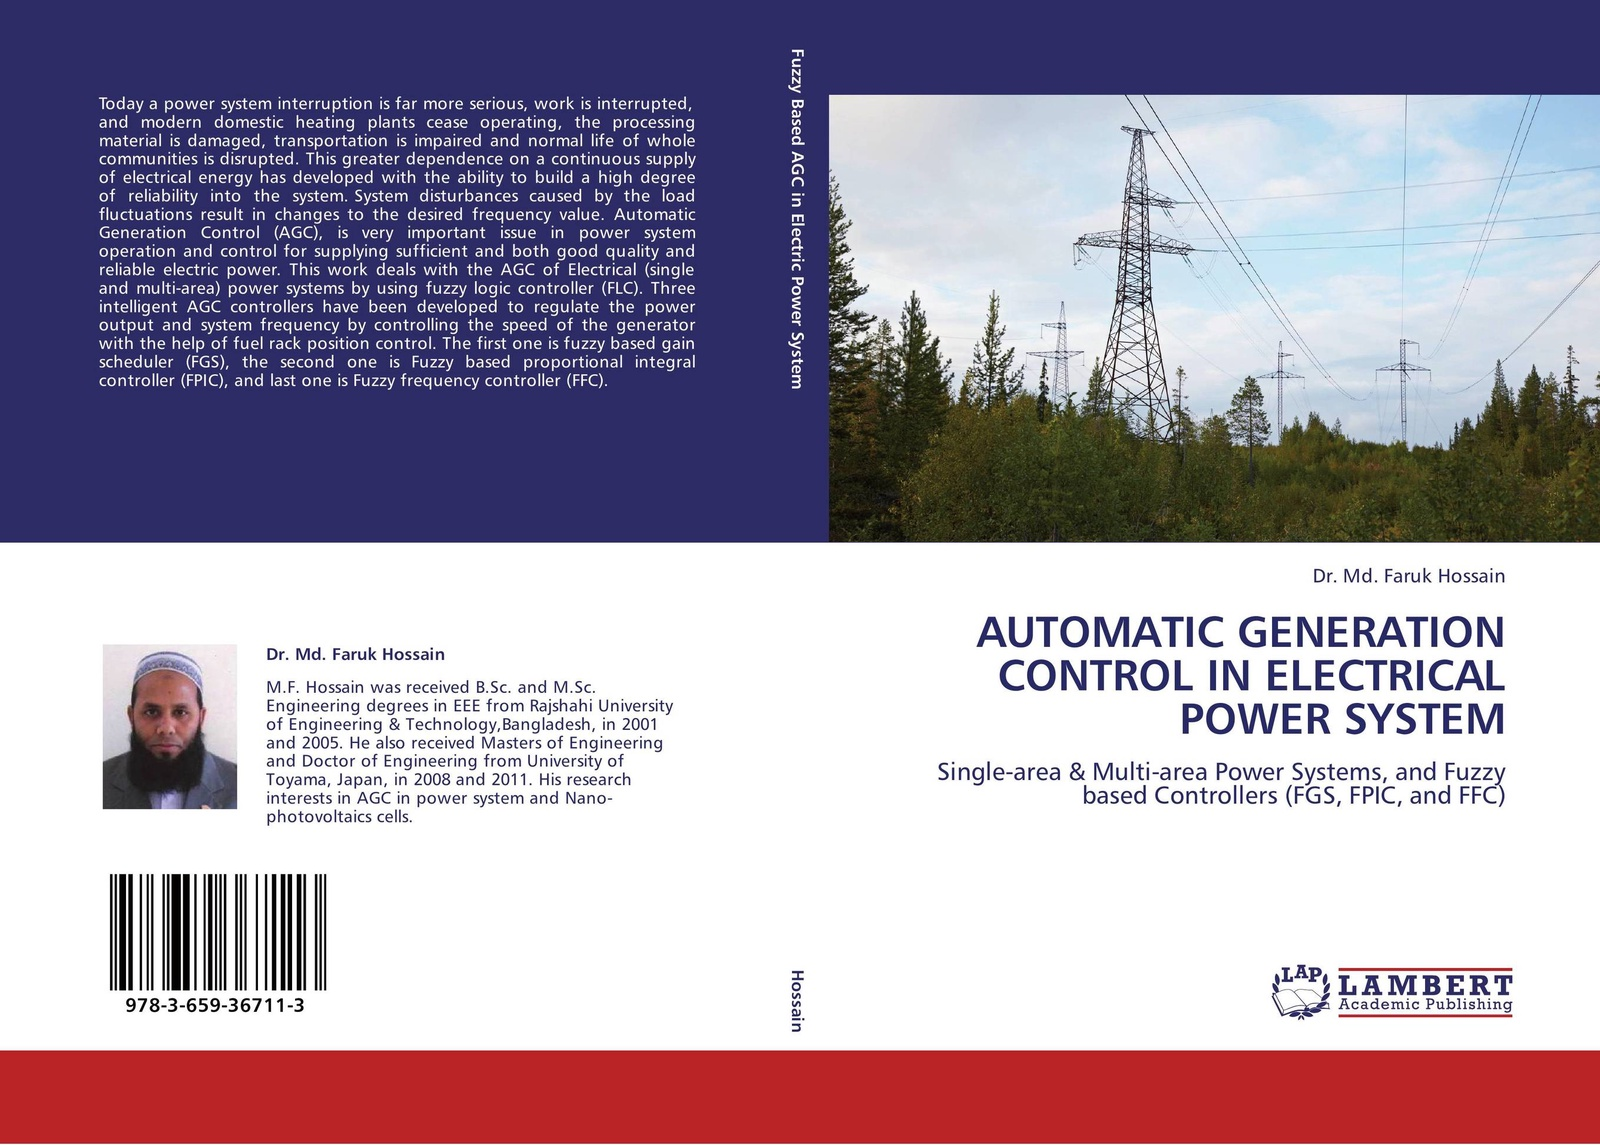 Dr. Md. Faruk Hossain AUTOMATIC GENERATION CONTROL IN ELECTRICAL POWER SYSTEM mohammad shahidehpour handbook of electrical power system dynamics modeling stability and control